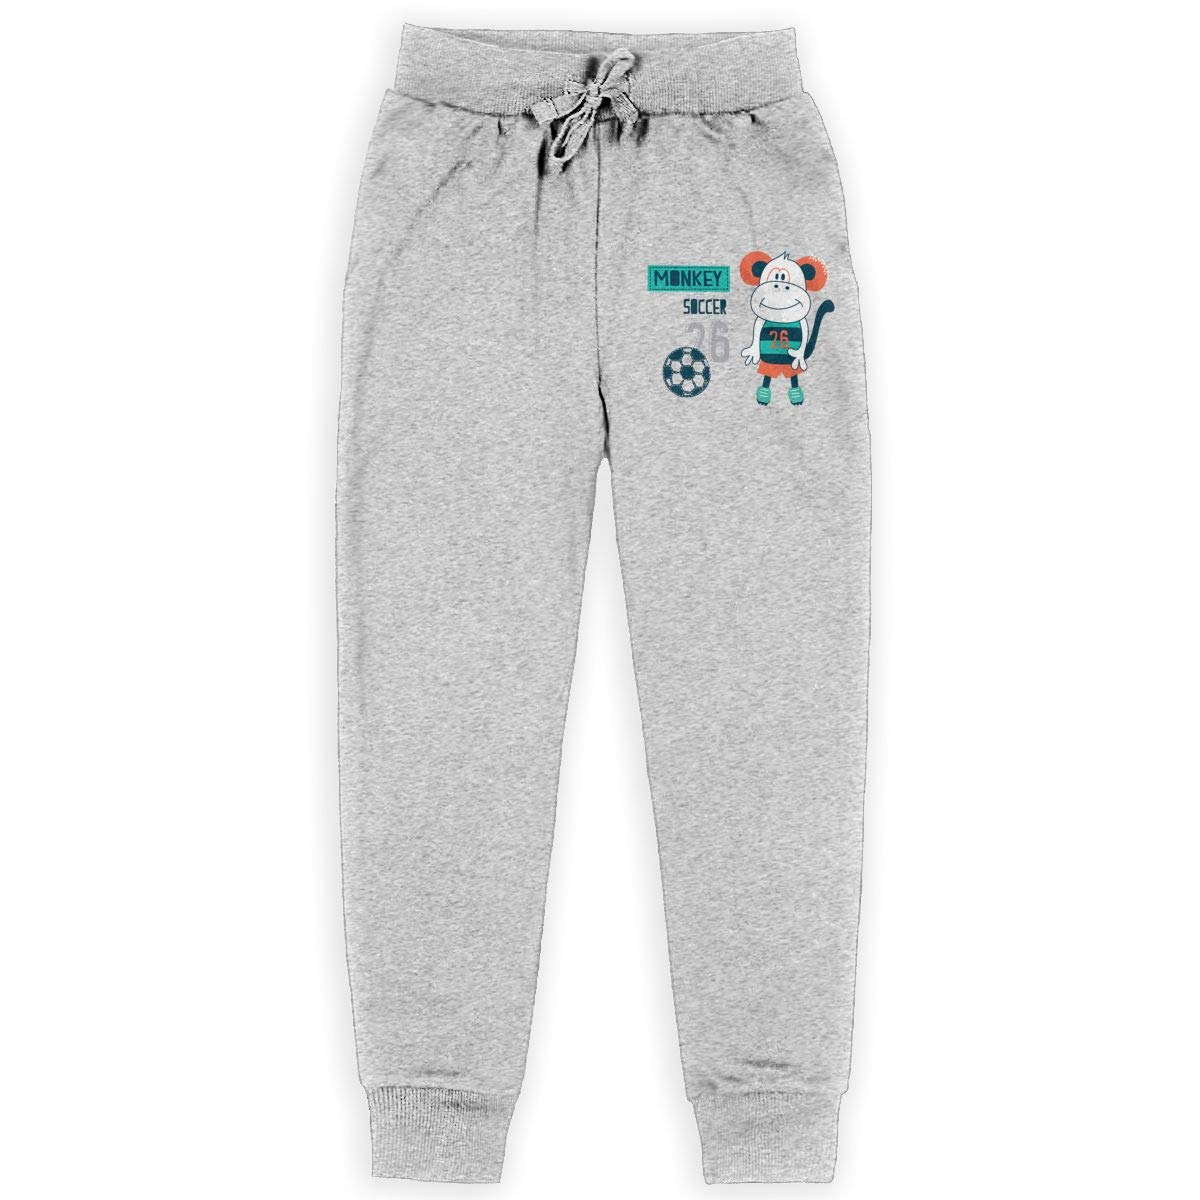 Xinding Boys Cotton Training Sweatpants Cute Monkey with Soccer Adjustable Waist Pants with Pocket